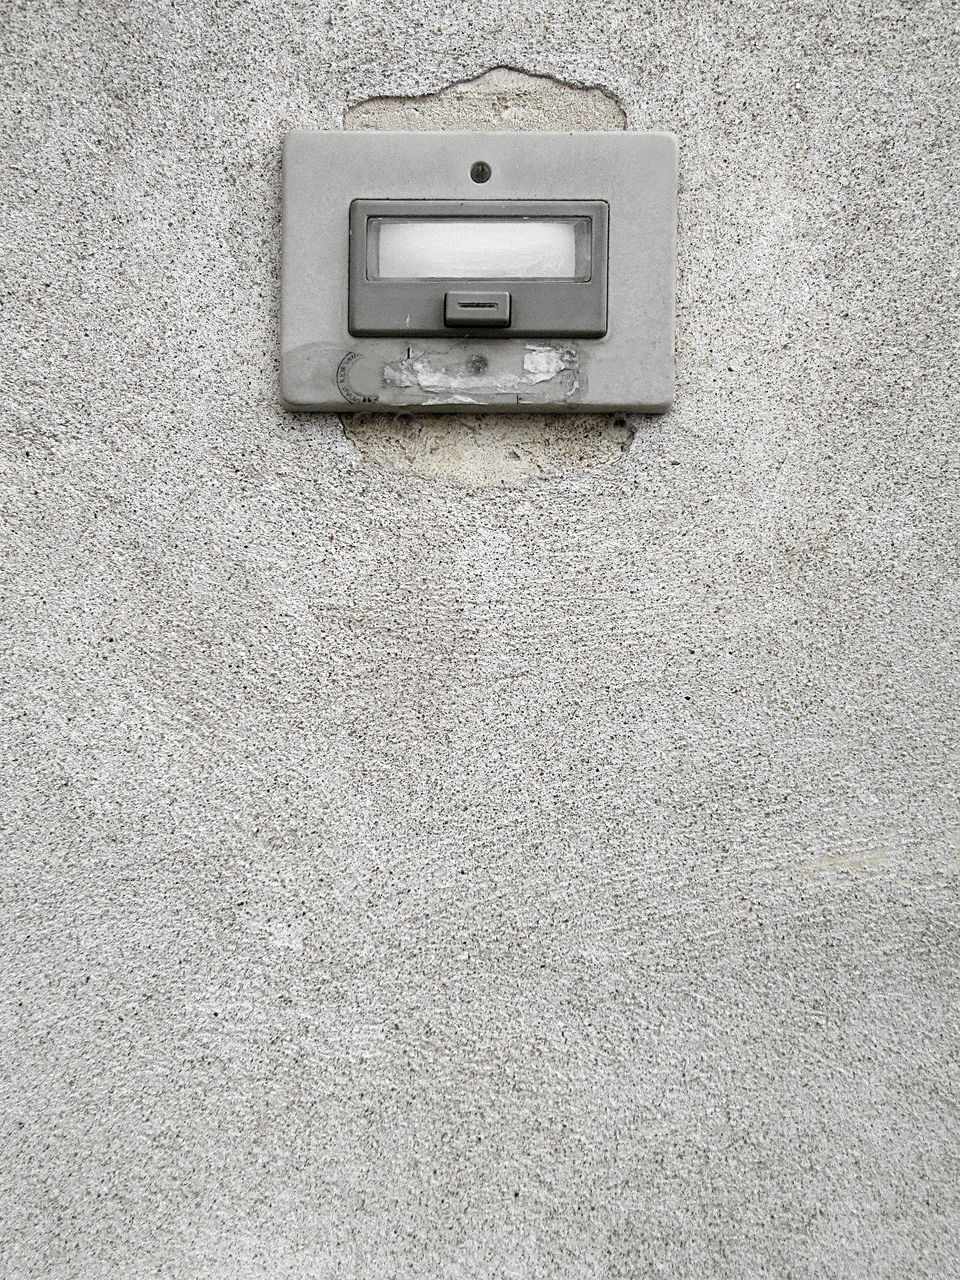 electricity, built structure, no people, switch, indoors, day, close-up, architecture, technology